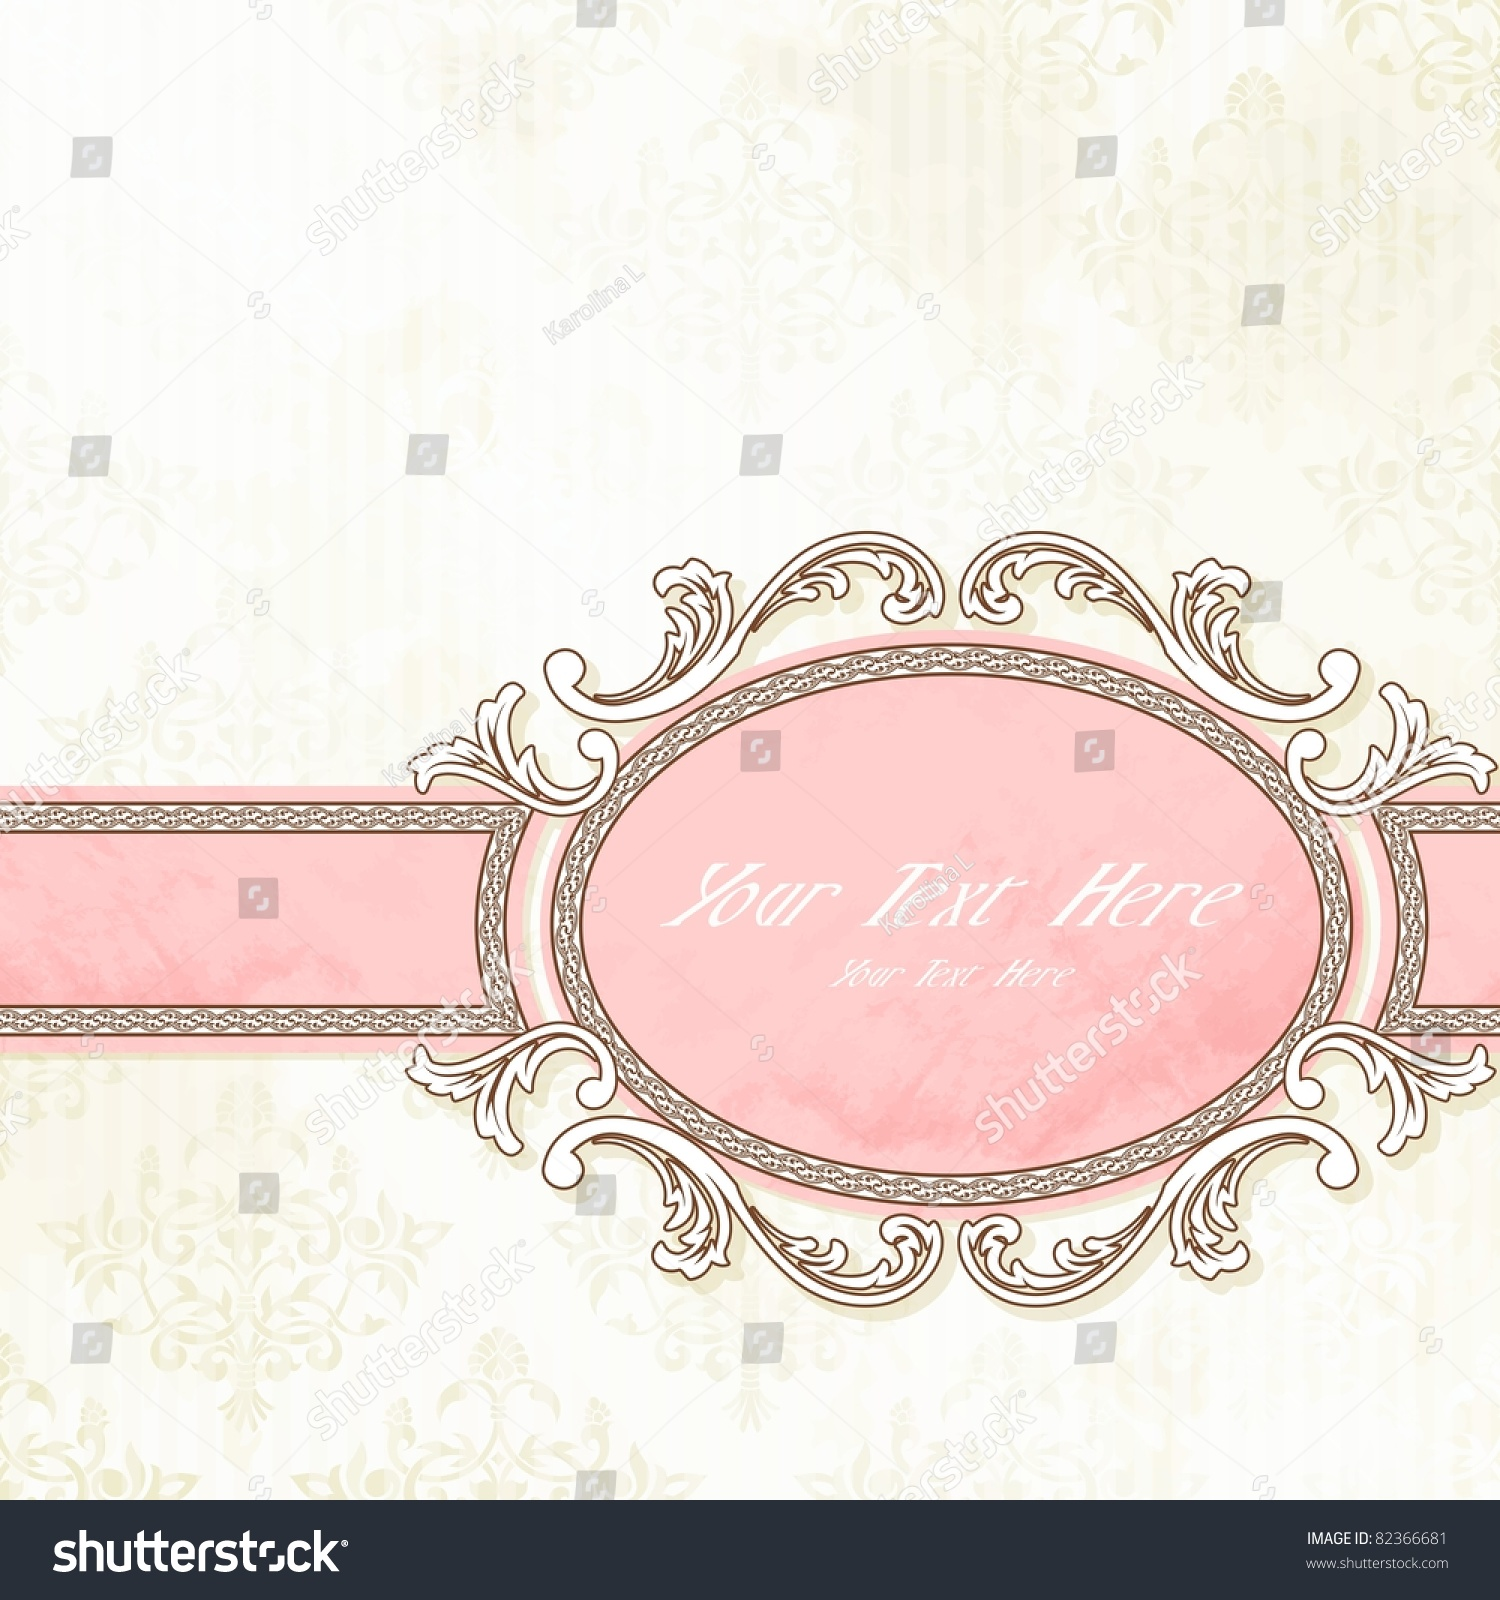 Antique White Pink Wedding Banner Eps10 Stock Vector 82366681 ...